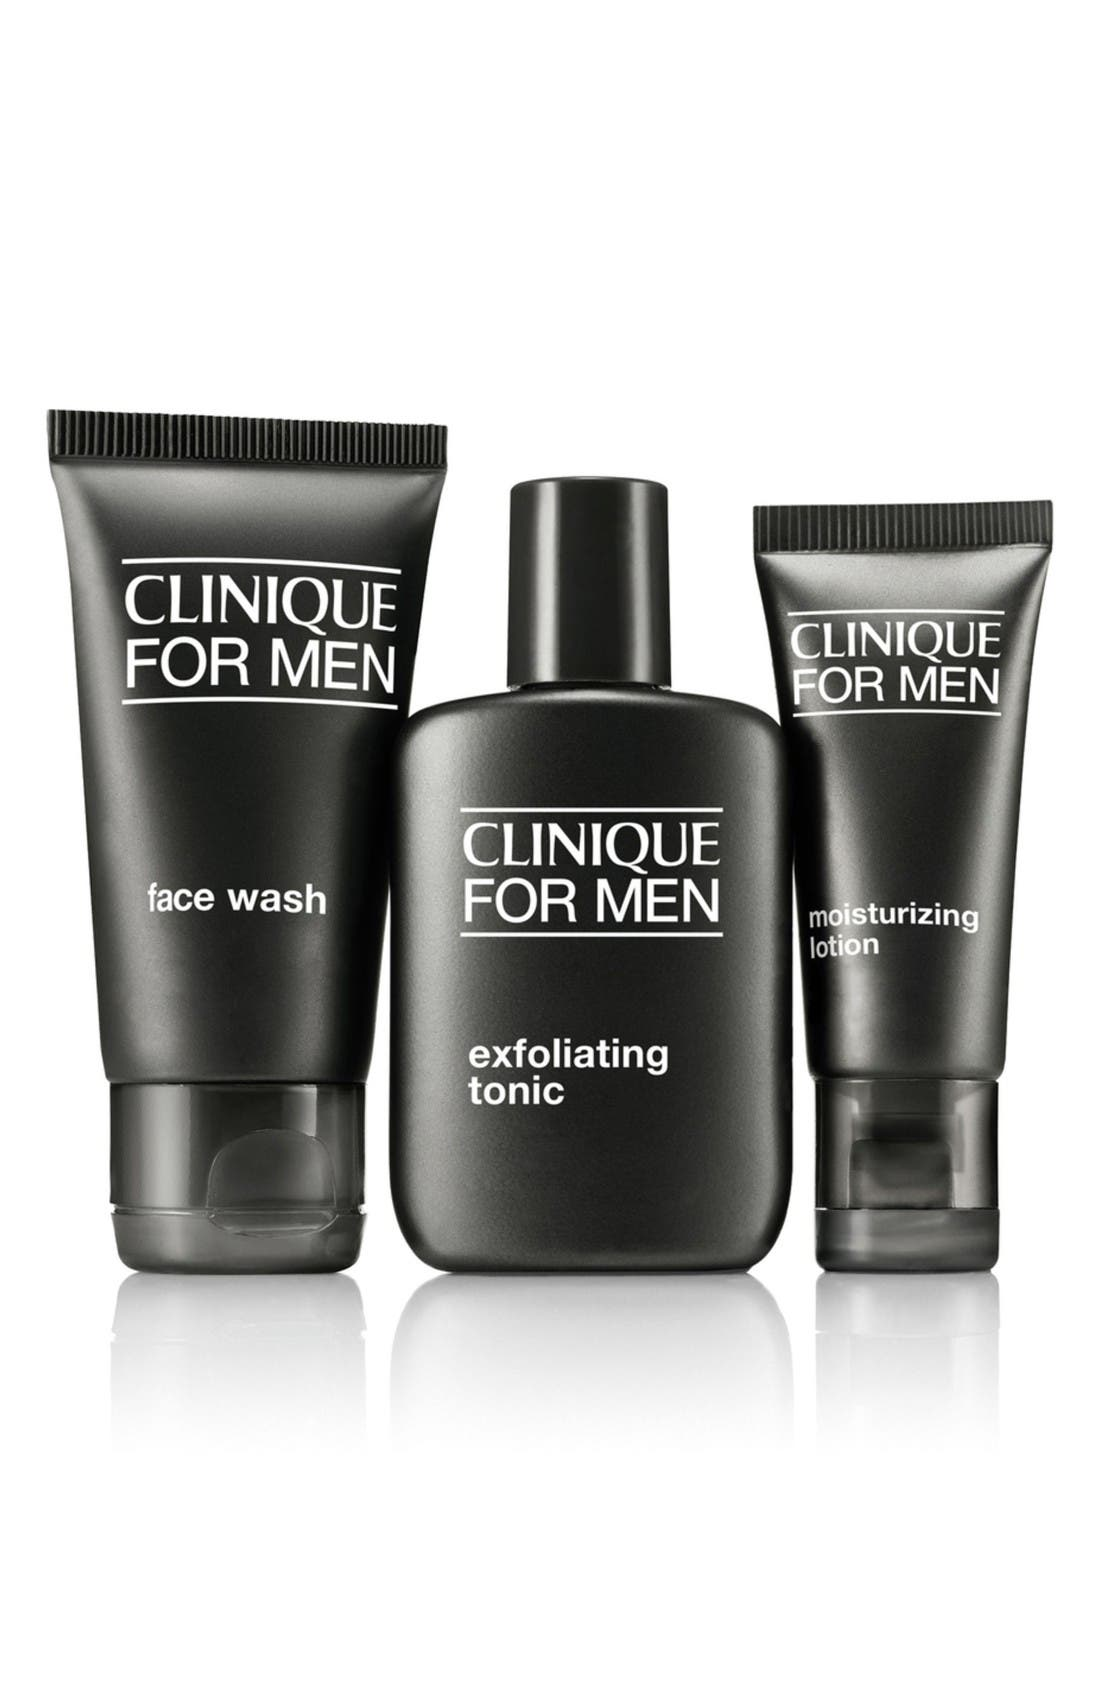 Clinique Men's Dry to Normal Skin Type Regimen